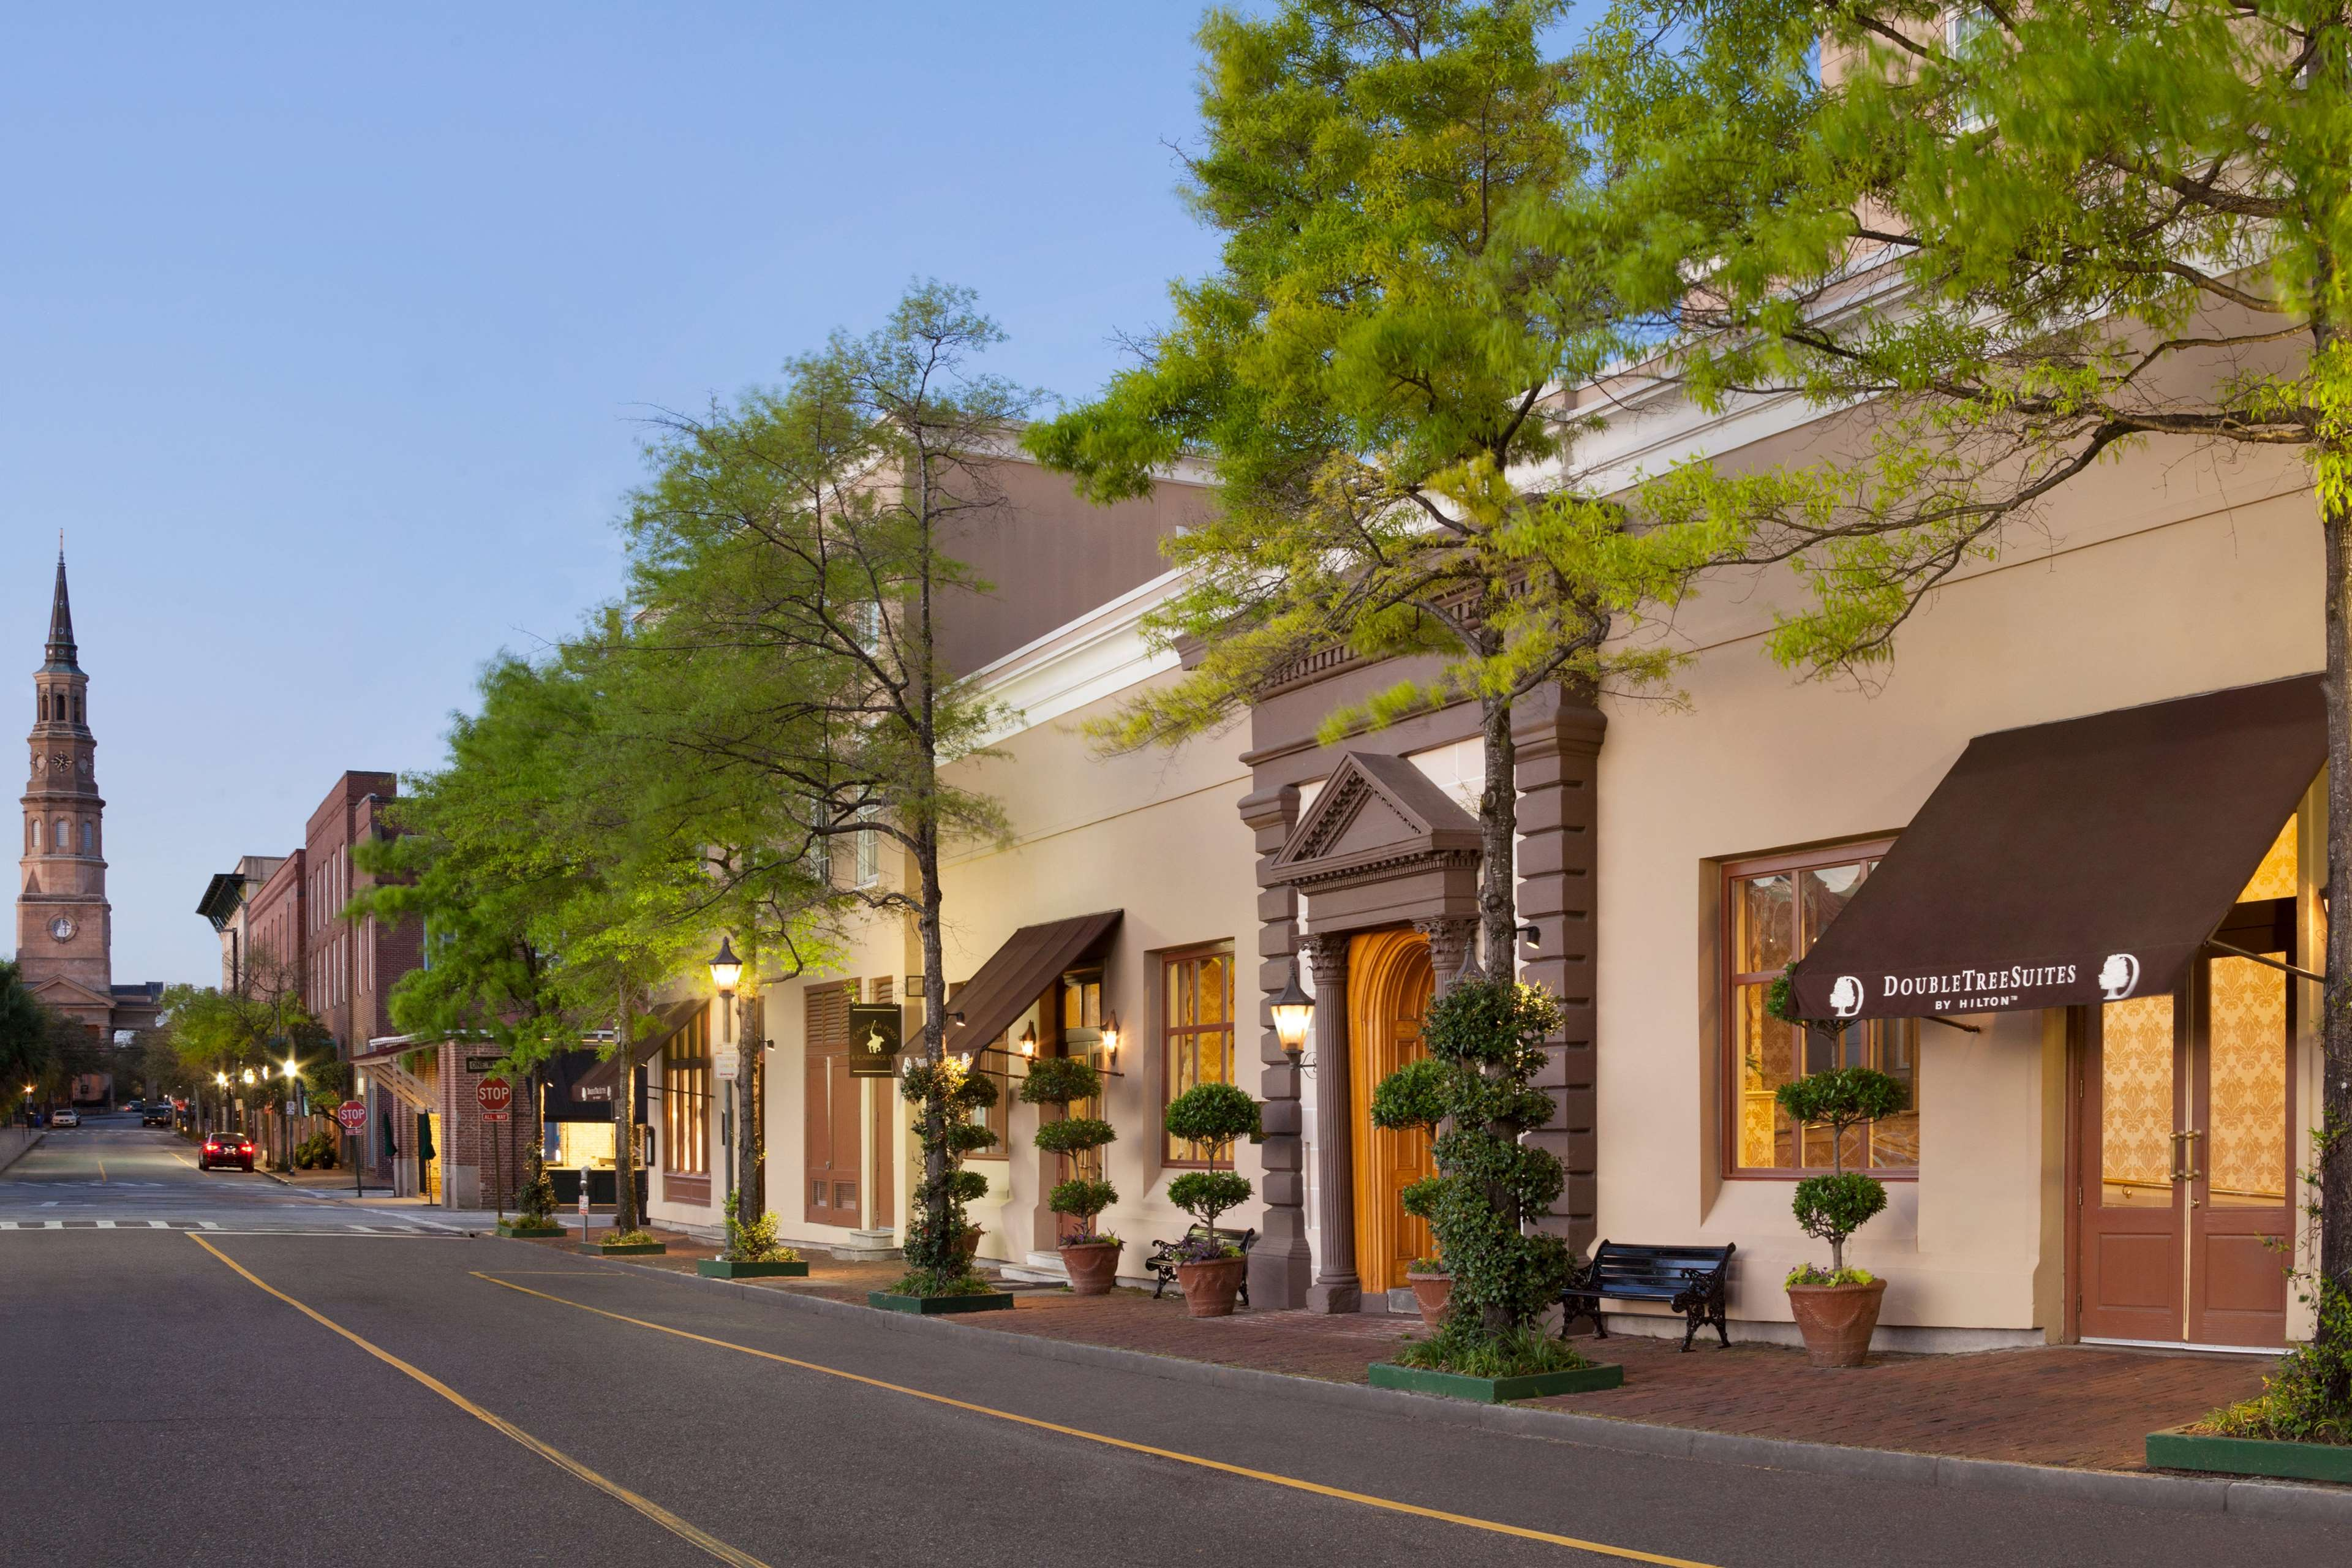 DoubleTree by Hilton Hotel & Suites Charleston - Historic District image 1